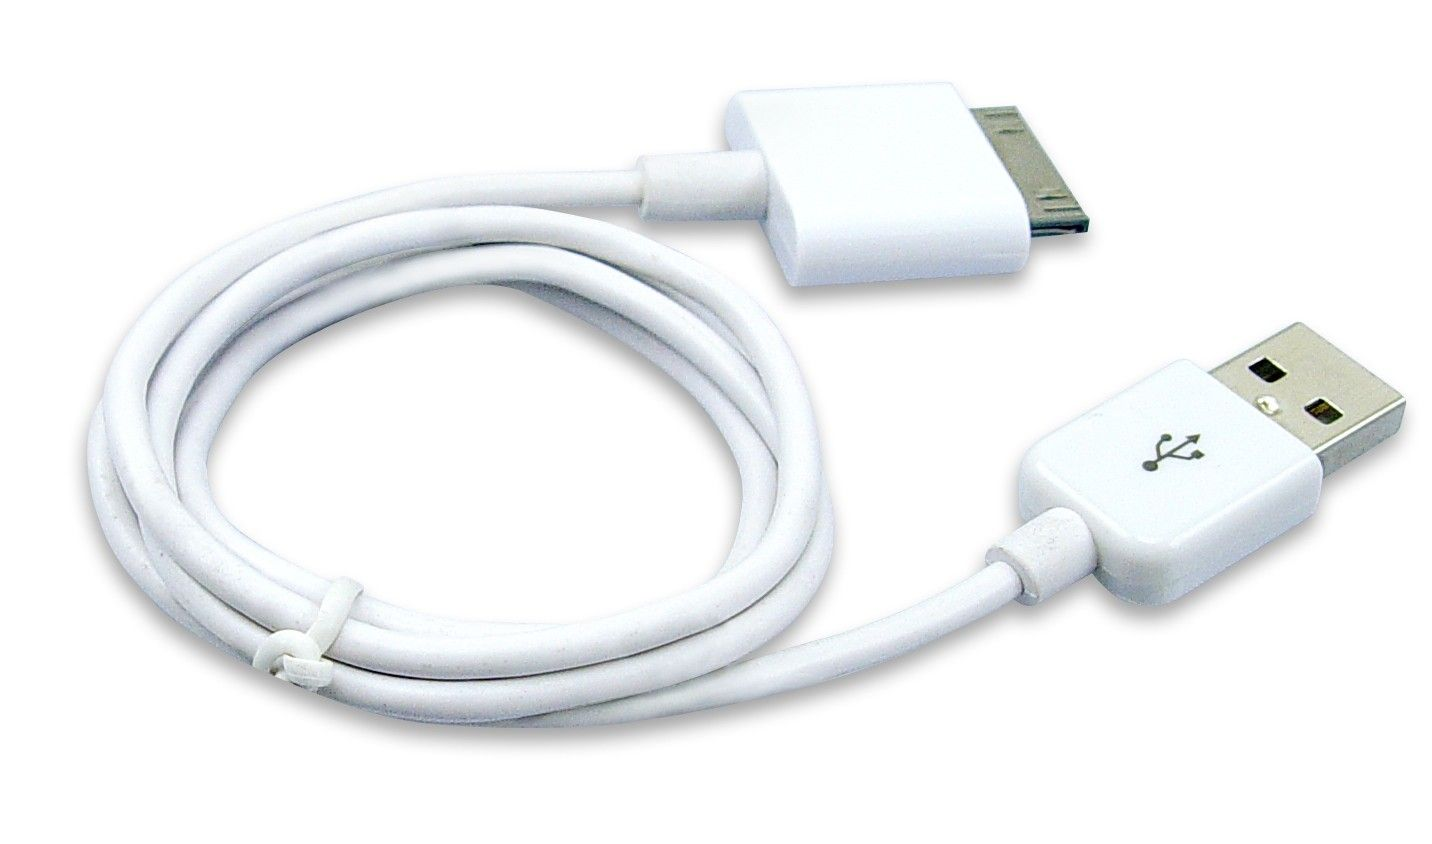 Кабель синхронизации Apple Dock Connector (MA591FE) для iPhone 4/4S - 1